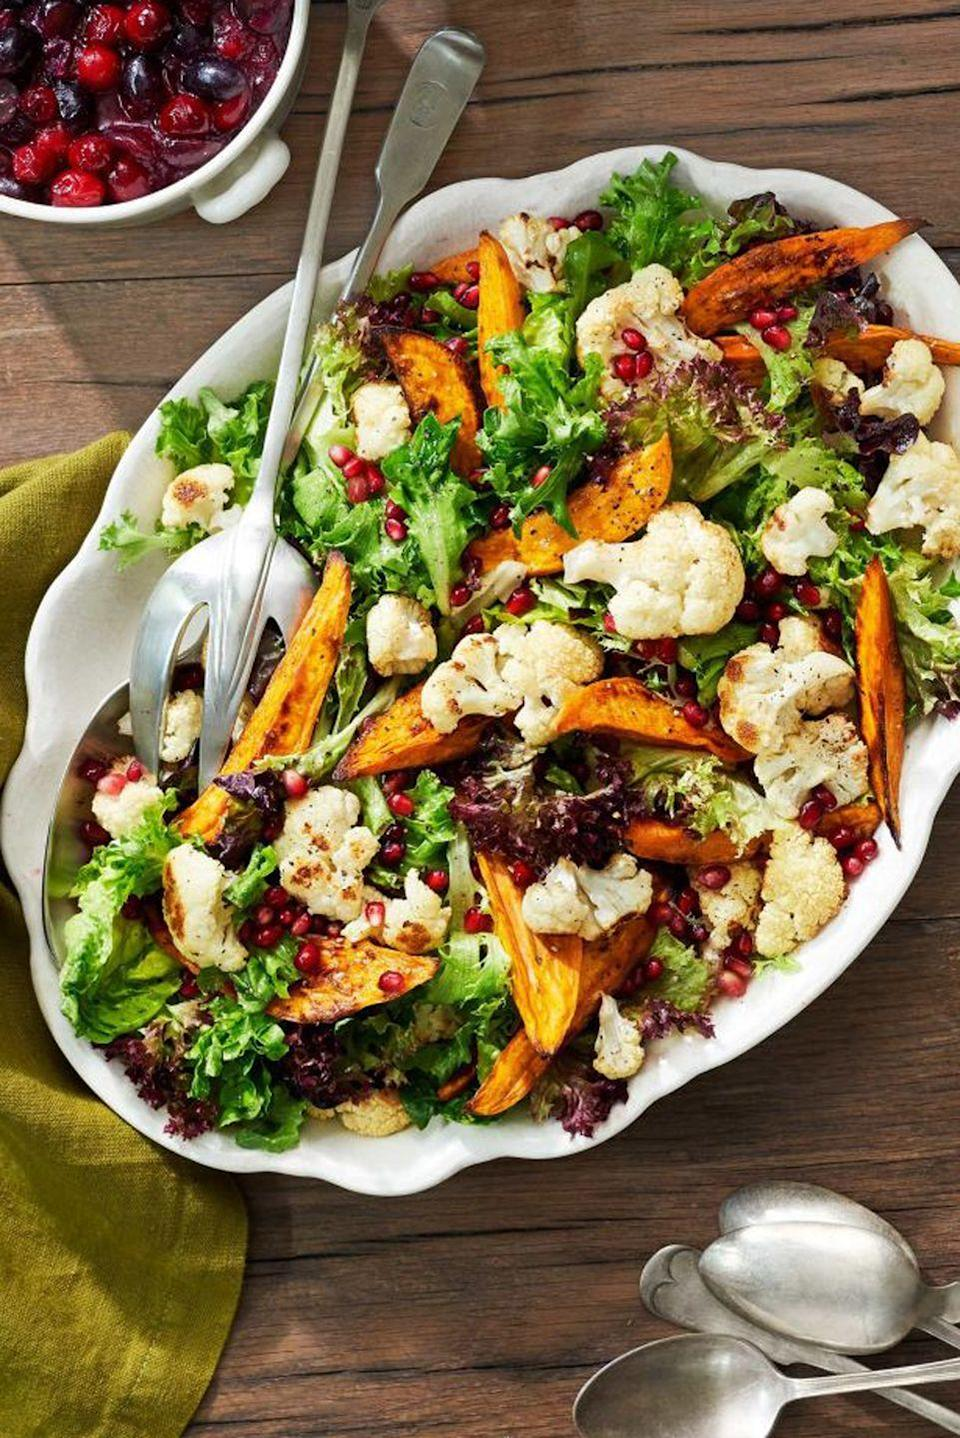 """<p>Find pomegranate seeds in stores from October through January. If you can't find 'em, sub in dried cranberries for a similar boost of tart sweetness. </p><p><a href=""""https://www.countryliving.com/food-drinks/recipes/a40029/sweet-potato-and-cauliflower-salad-recipe/"""" rel=""""nofollow noopener"""" target=""""_blank"""" data-ylk=""""slk:Get the recipe from Country Living »"""" class=""""link rapid-noclick-resp""""><em>Get the recipe from Country Living »</em> </a></p>"""